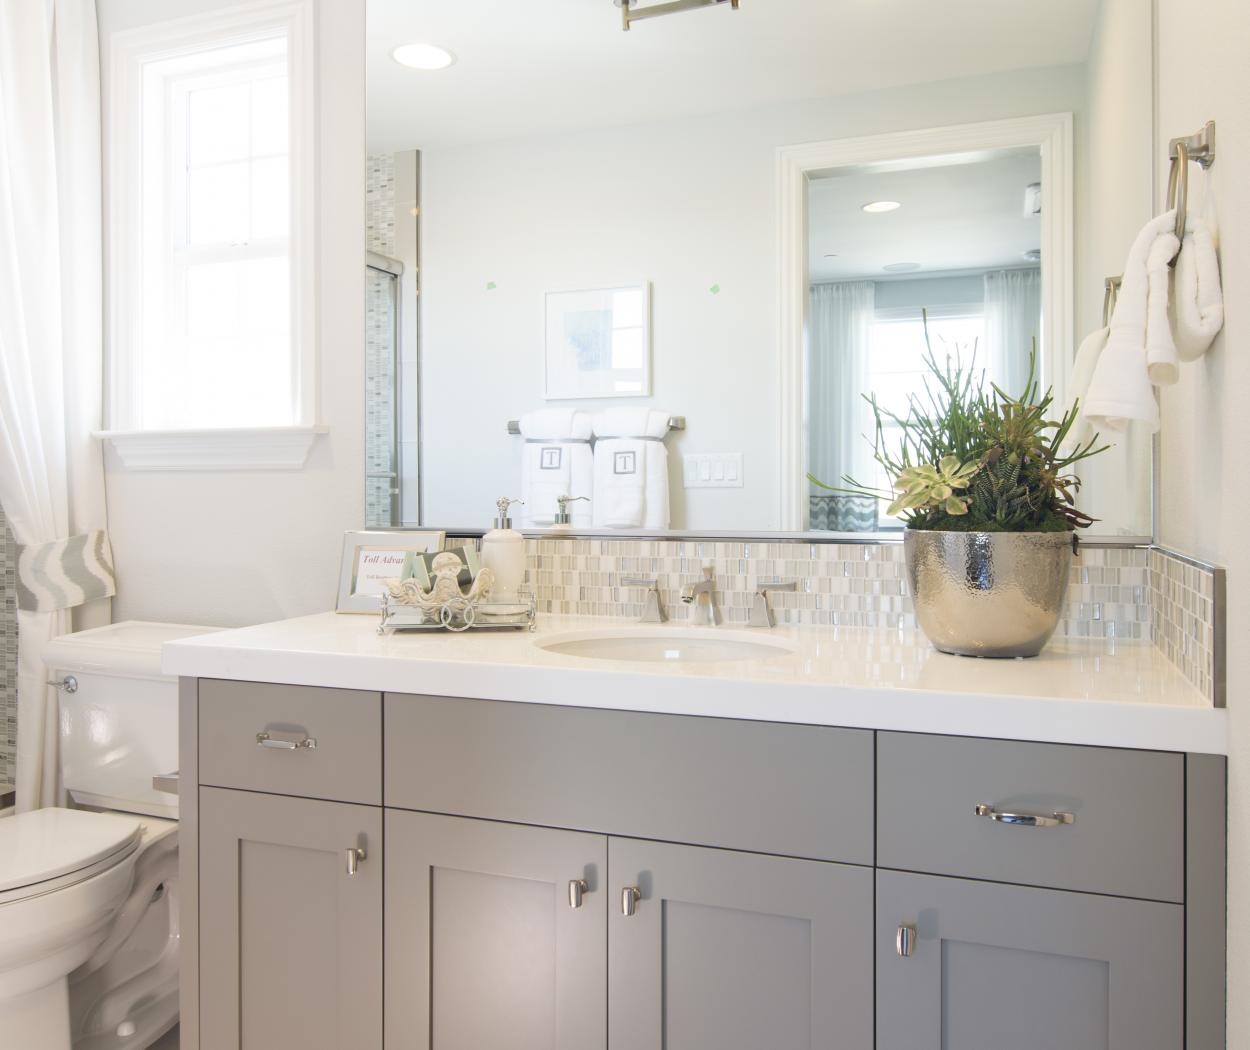 Transitional Painted Bathroom Vanity with a Beautiful White Counter Top and Silver Knobs - Pulls